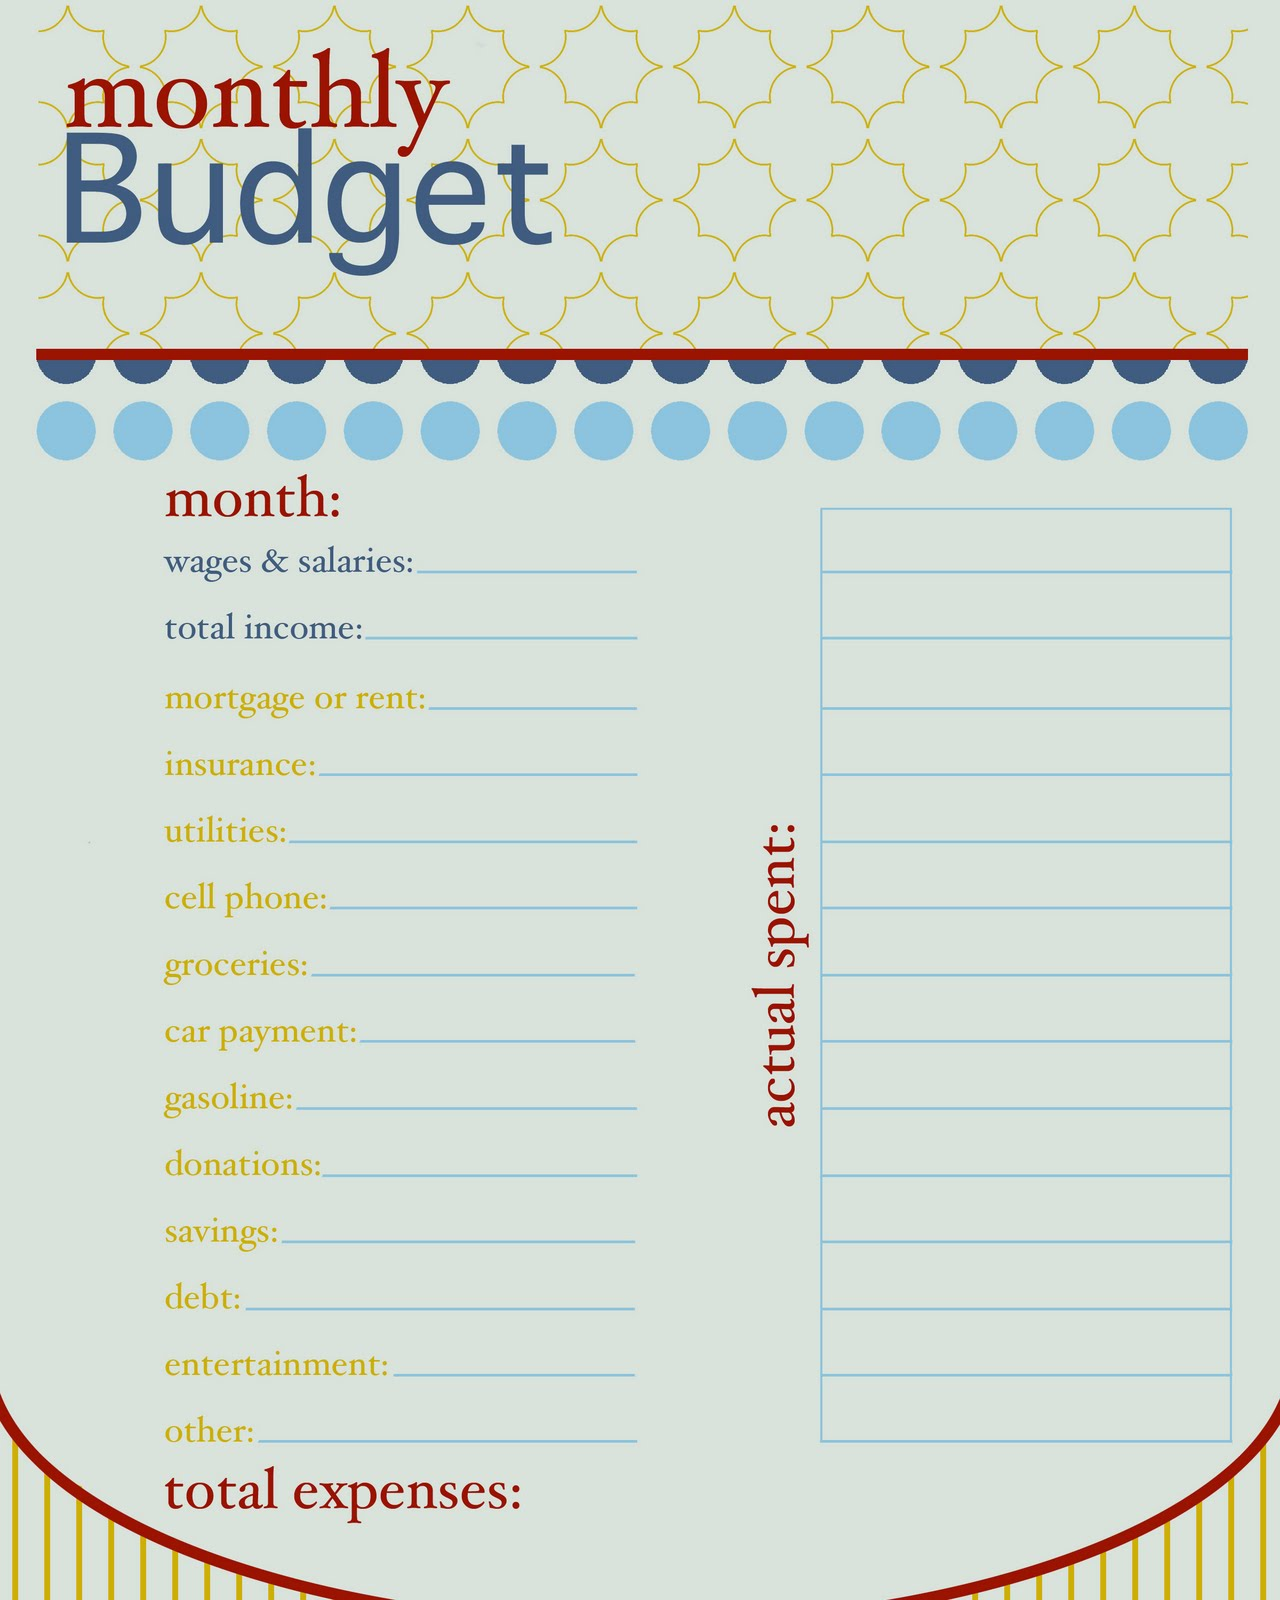 Worksheets Blank Monthly Budget Worksheet easy monthly budget worksheet imperialdesignstudio sure there are plenty of free worksheets around the web but